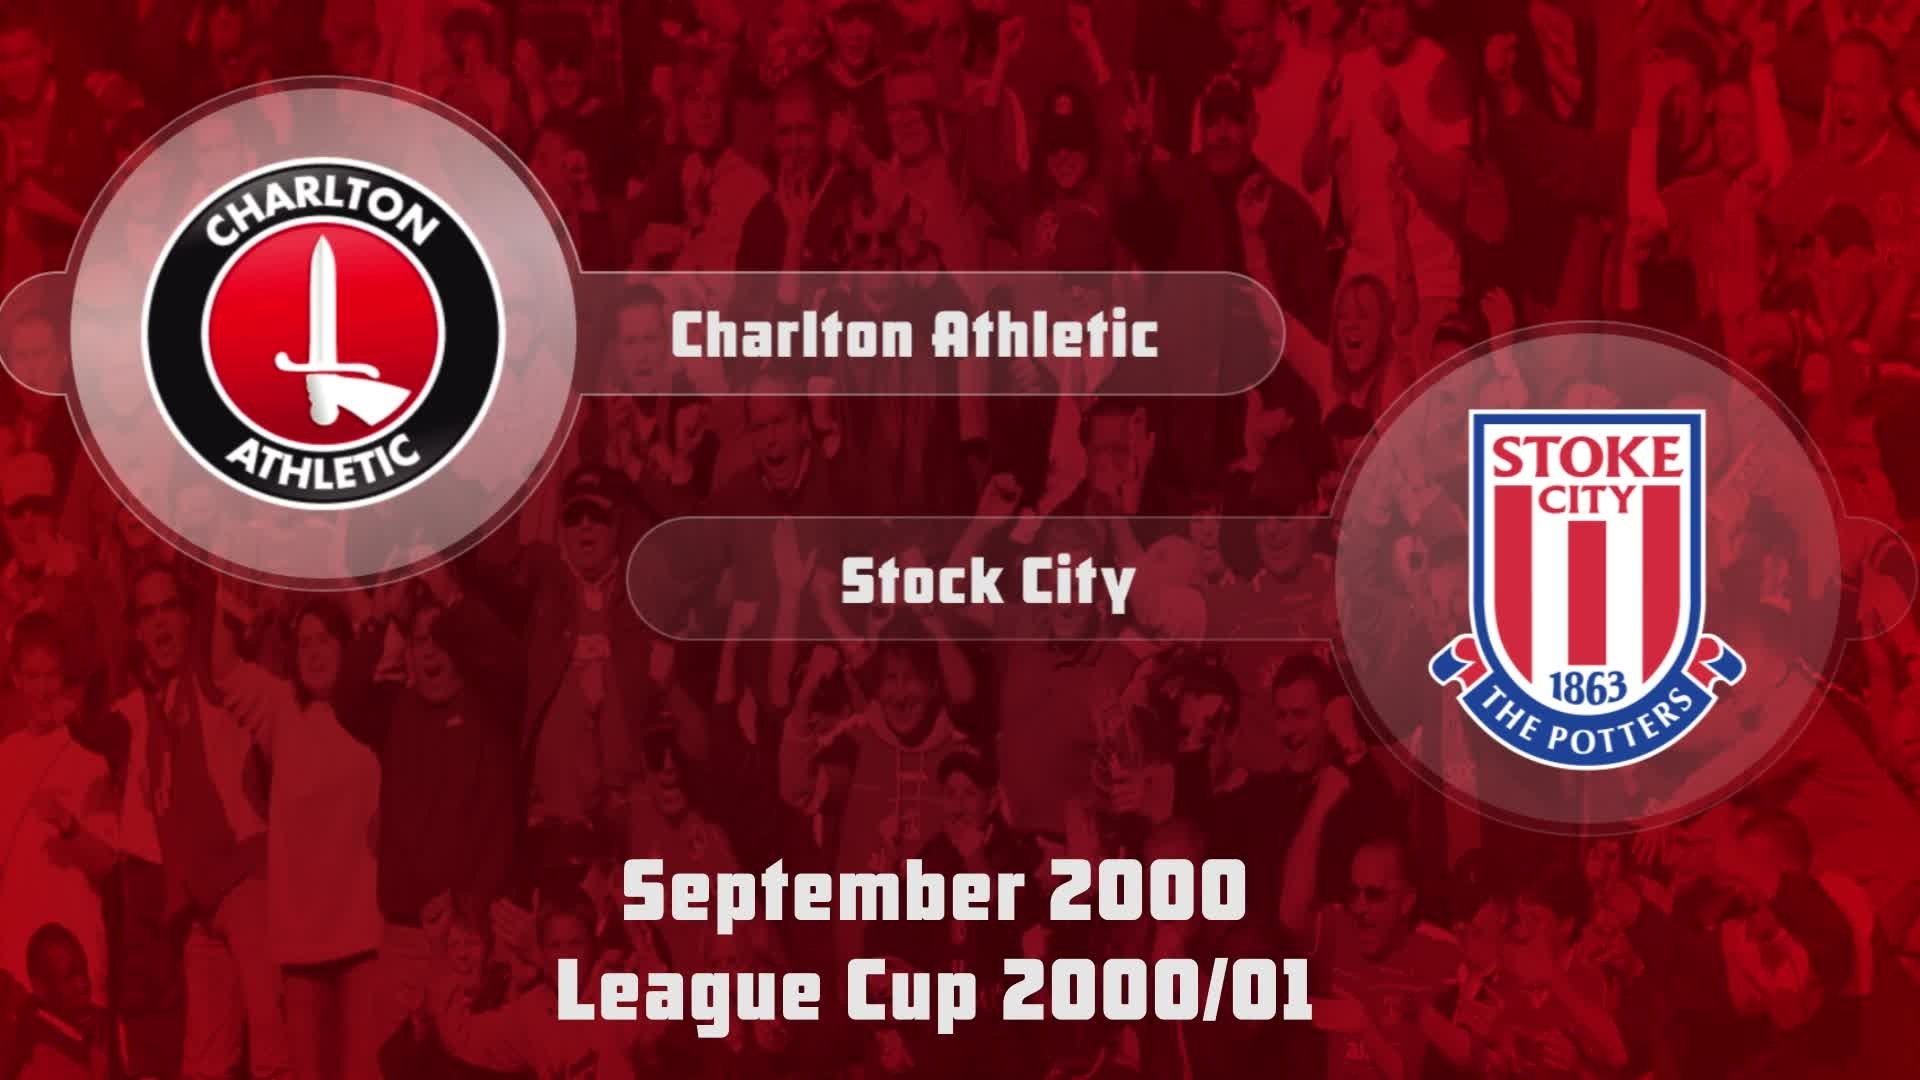 09 HIGHLIGHTS | Charlton 4 Stoke City 3 (League Cup Sept 2000)